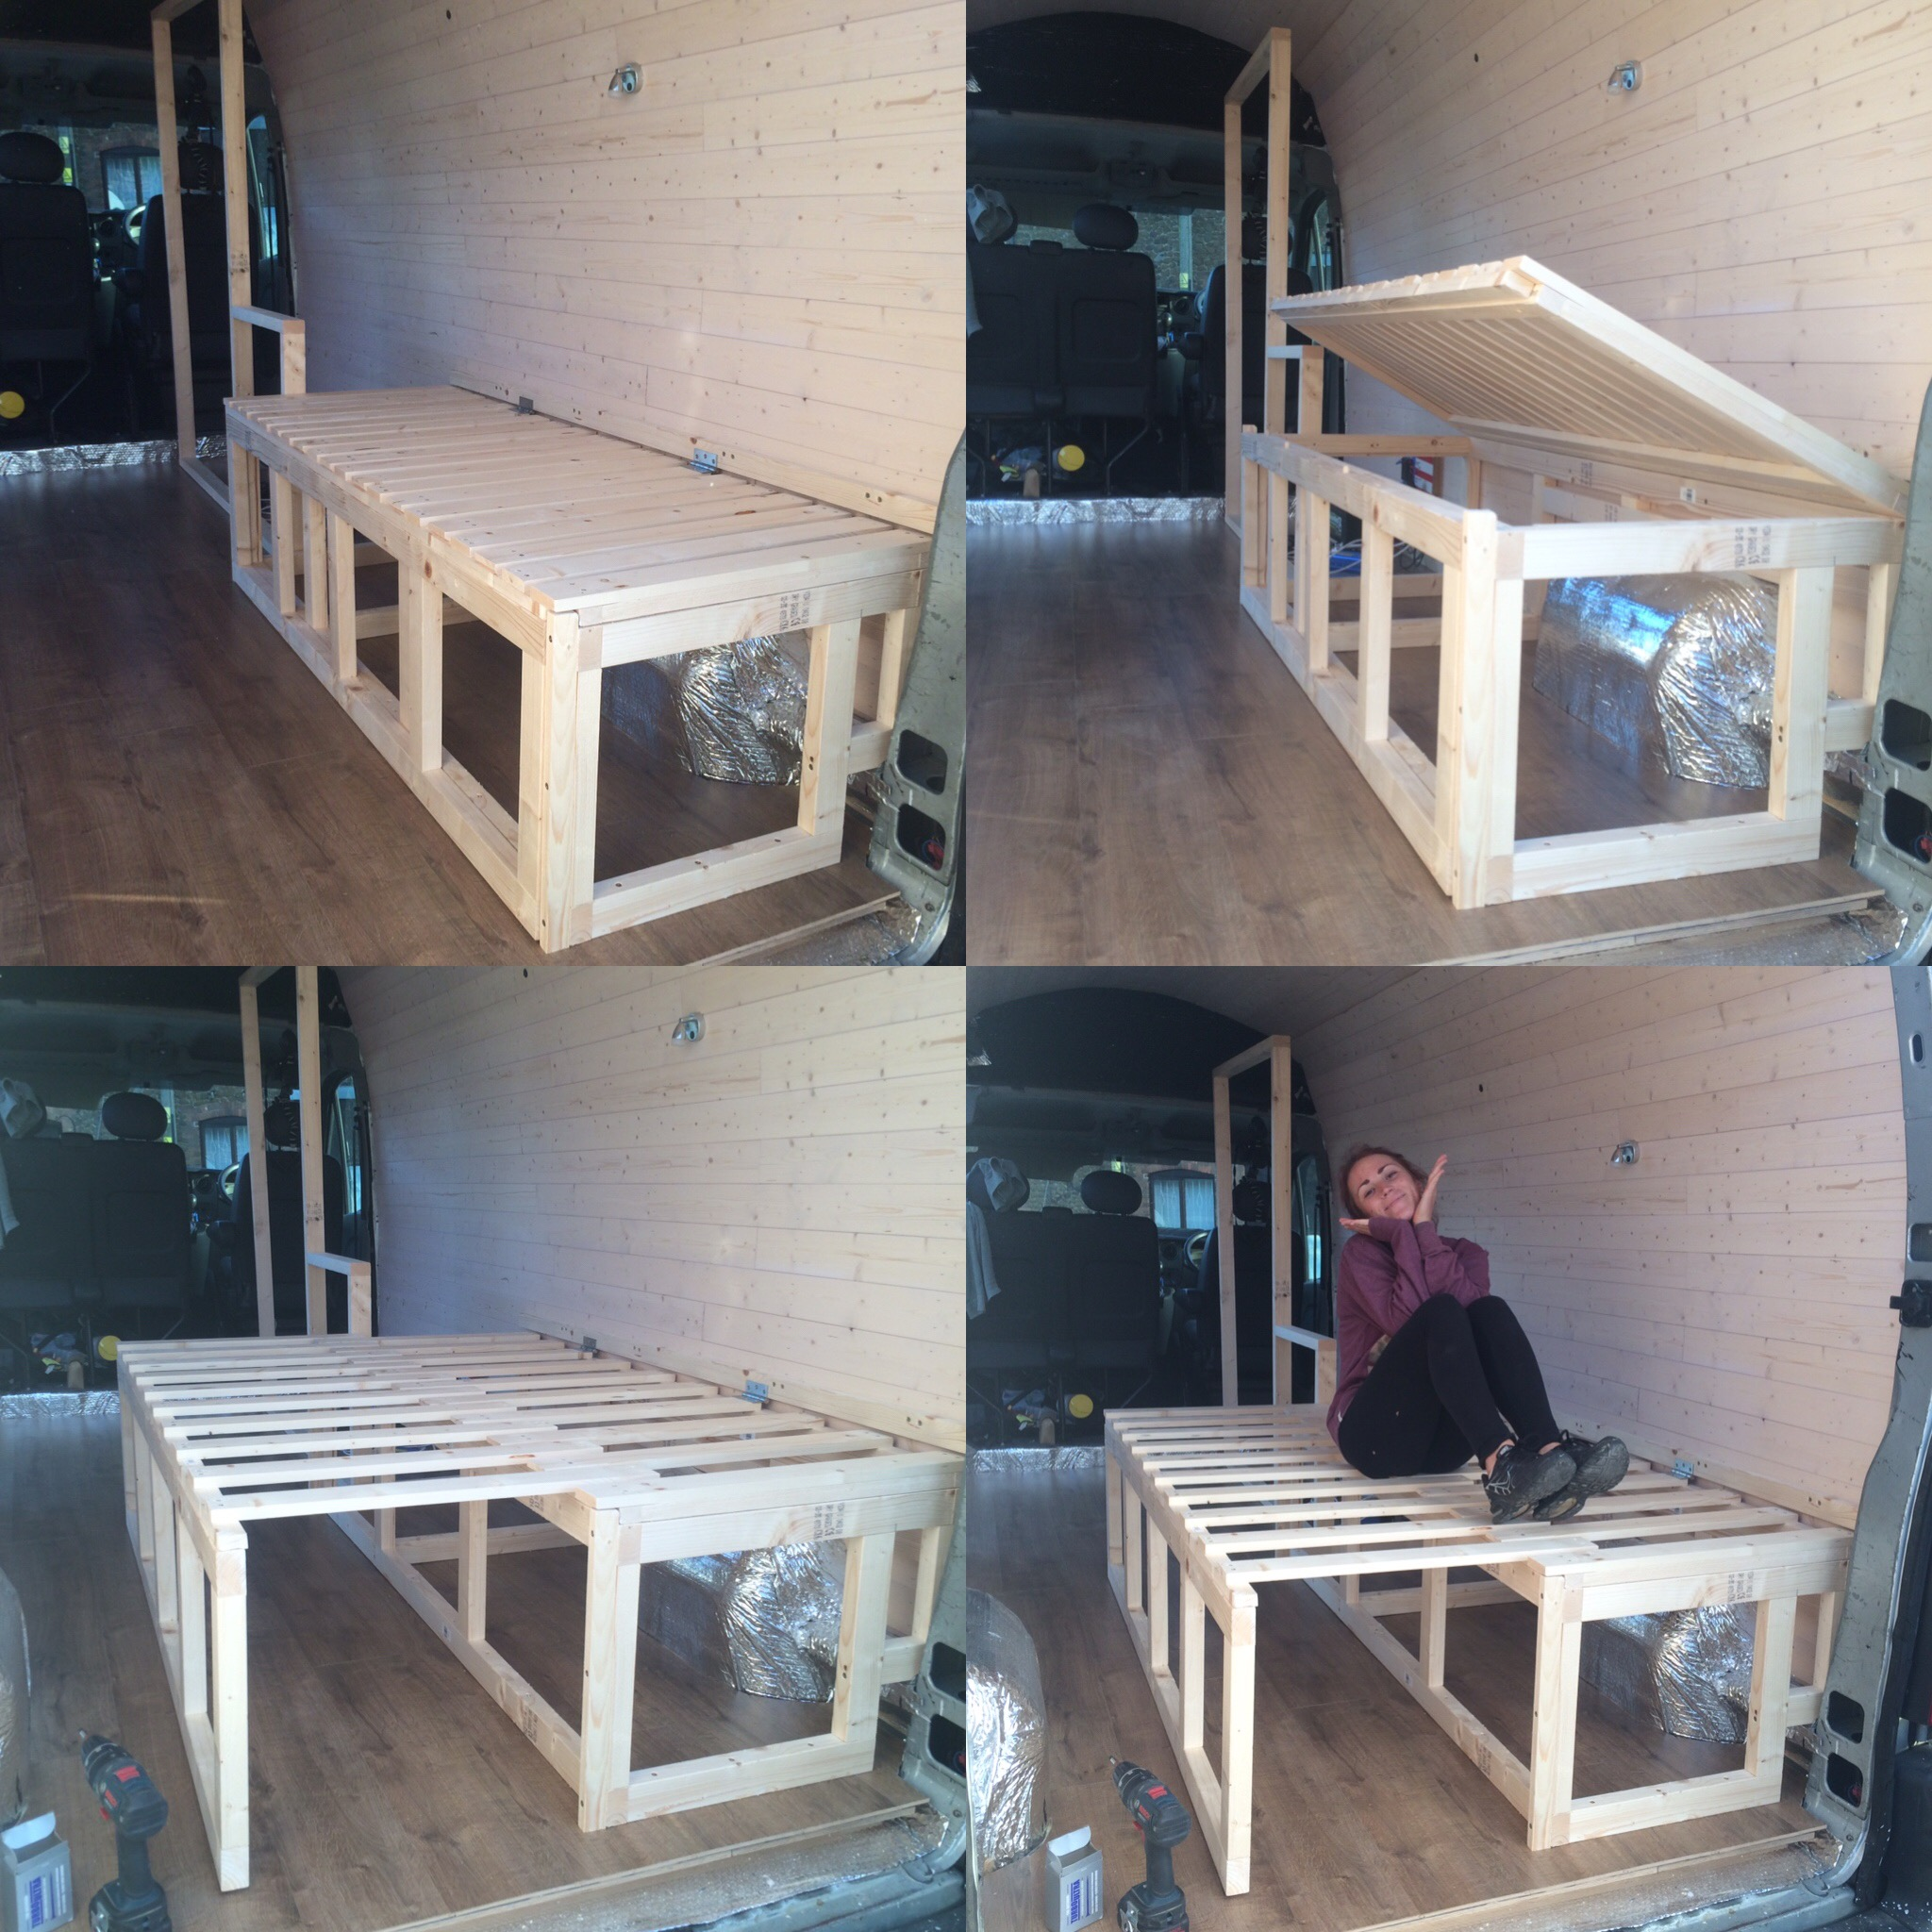 01 Bed Design Donkey Van Conversion Building The Furniture And